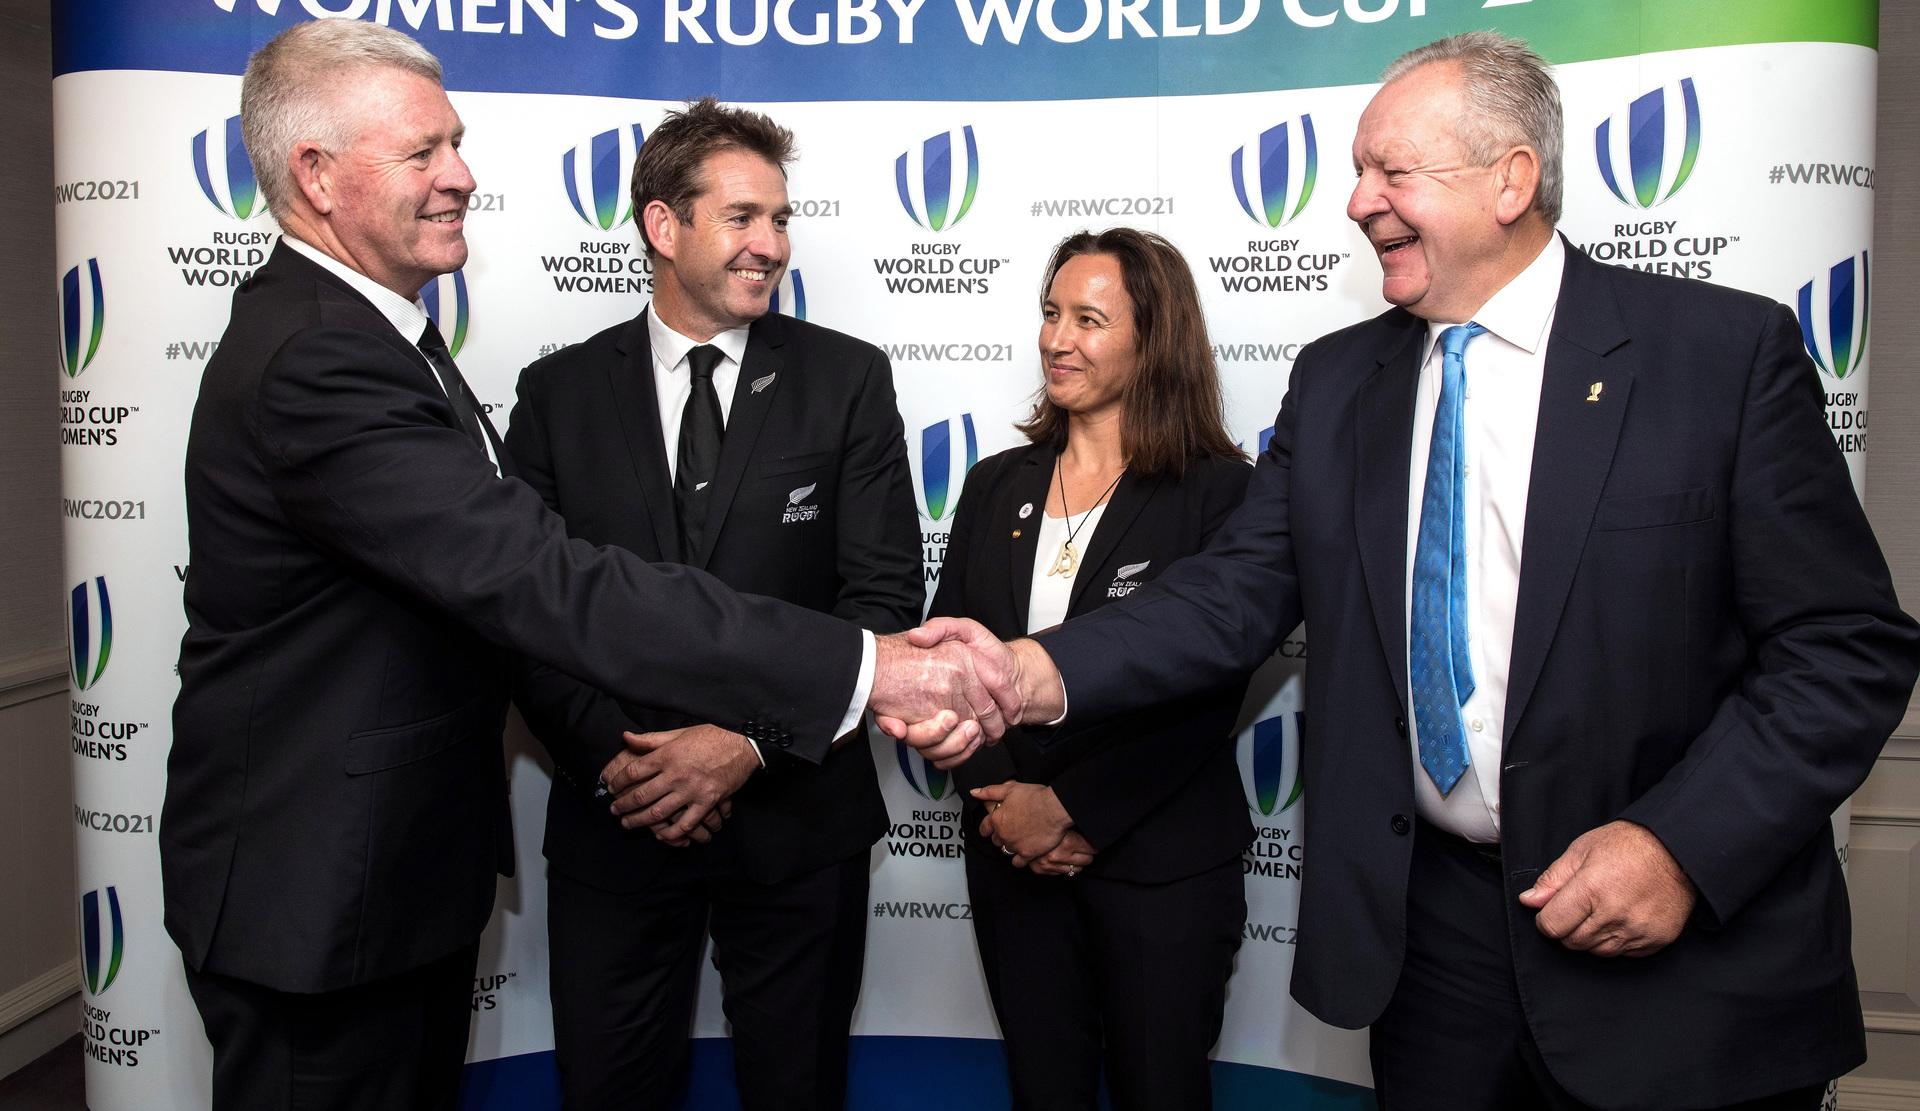 3-star hotels, gender inequality: The truth about 2021 Rugby World Cup